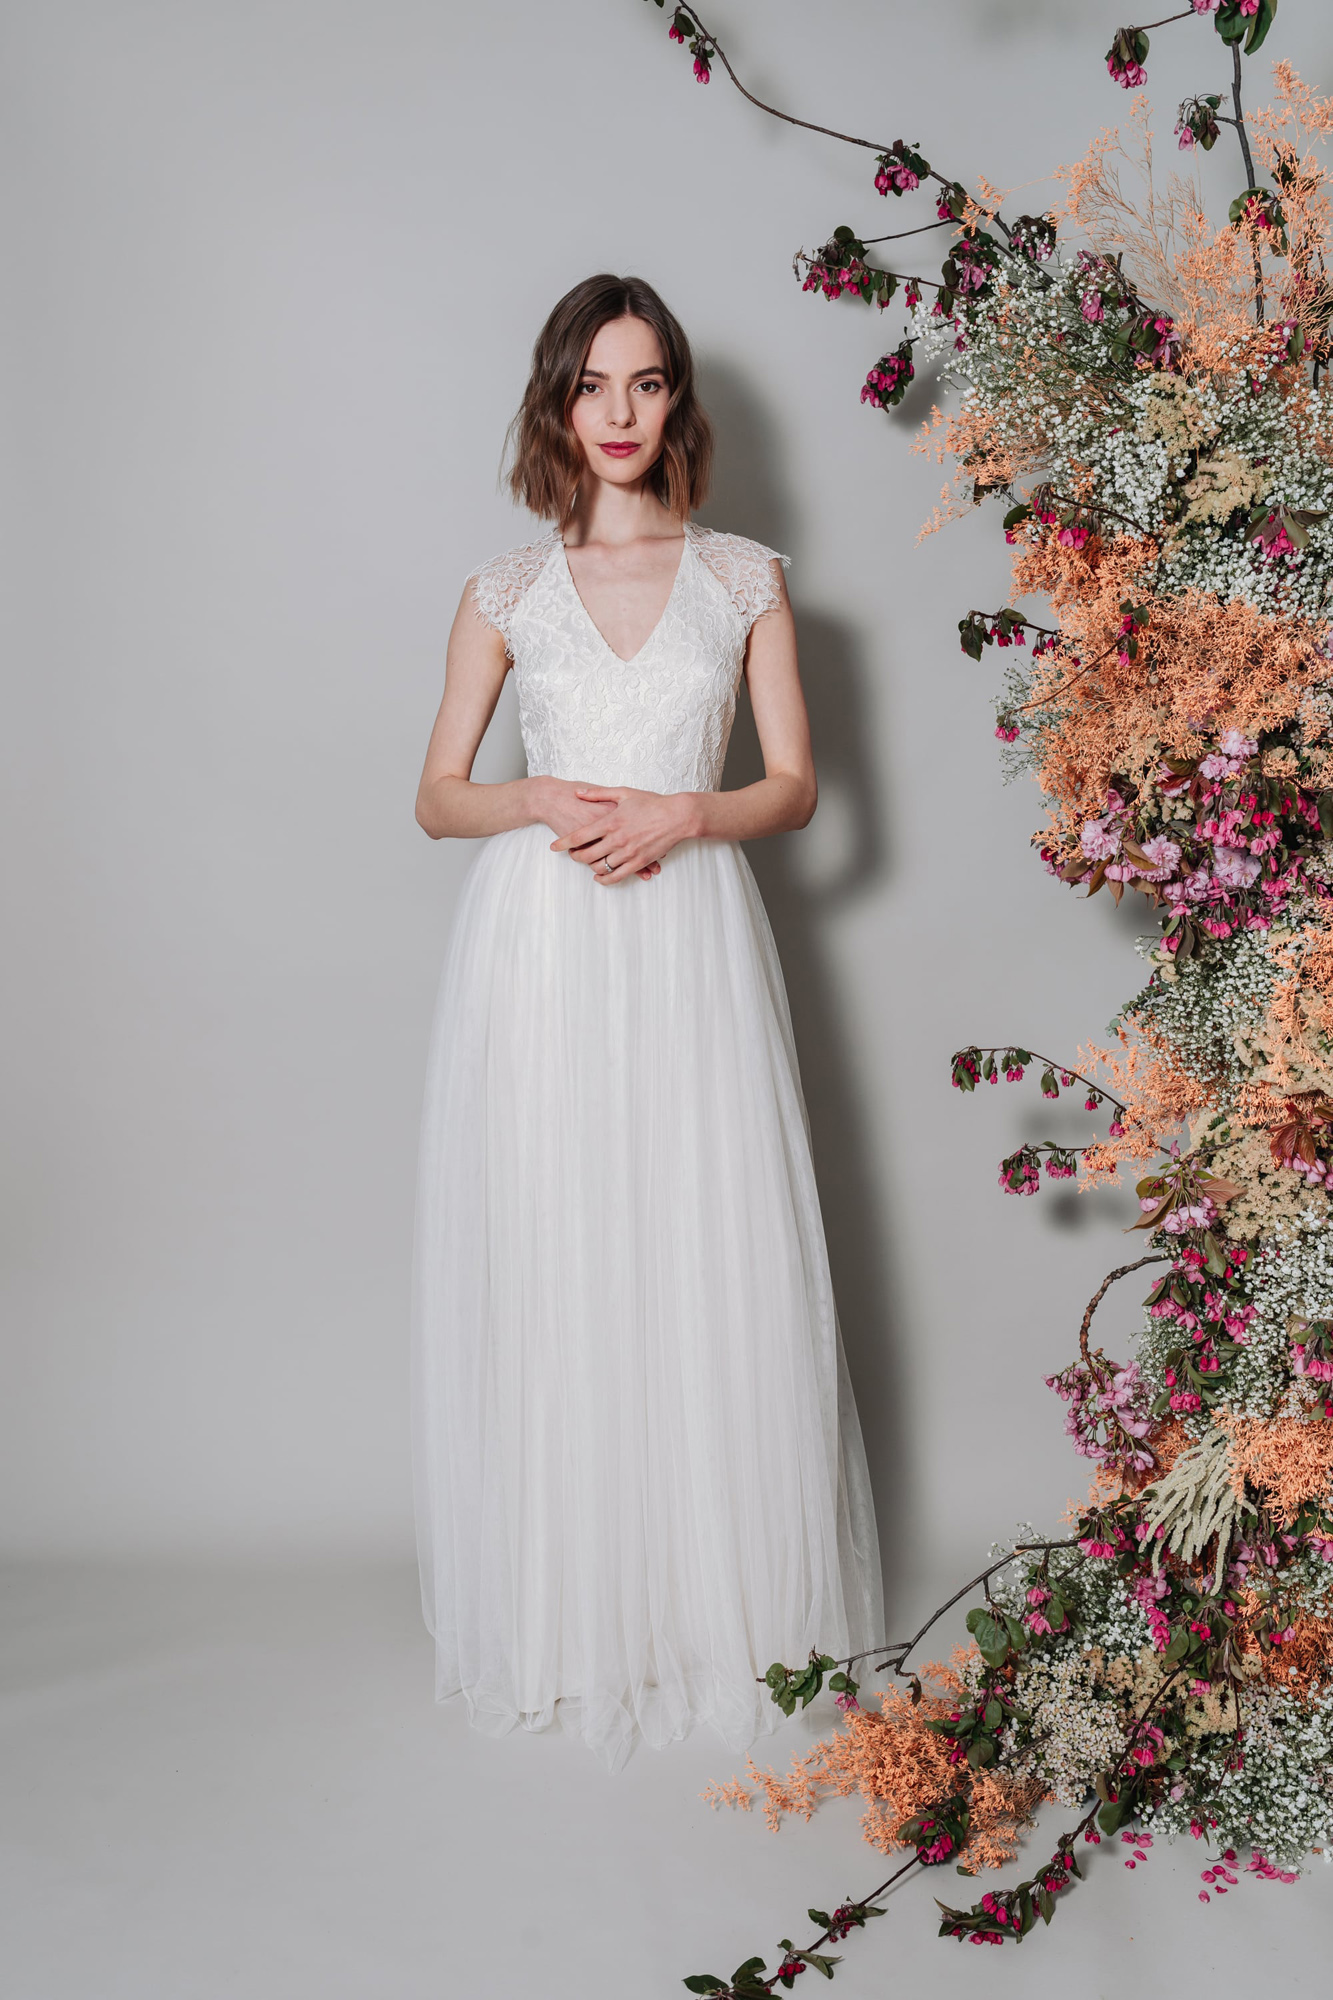 Kate-Beaumont-Sheffield-Mimosa-Lace-Tulle-Bohemian-Wedding-Gown-5.jpg